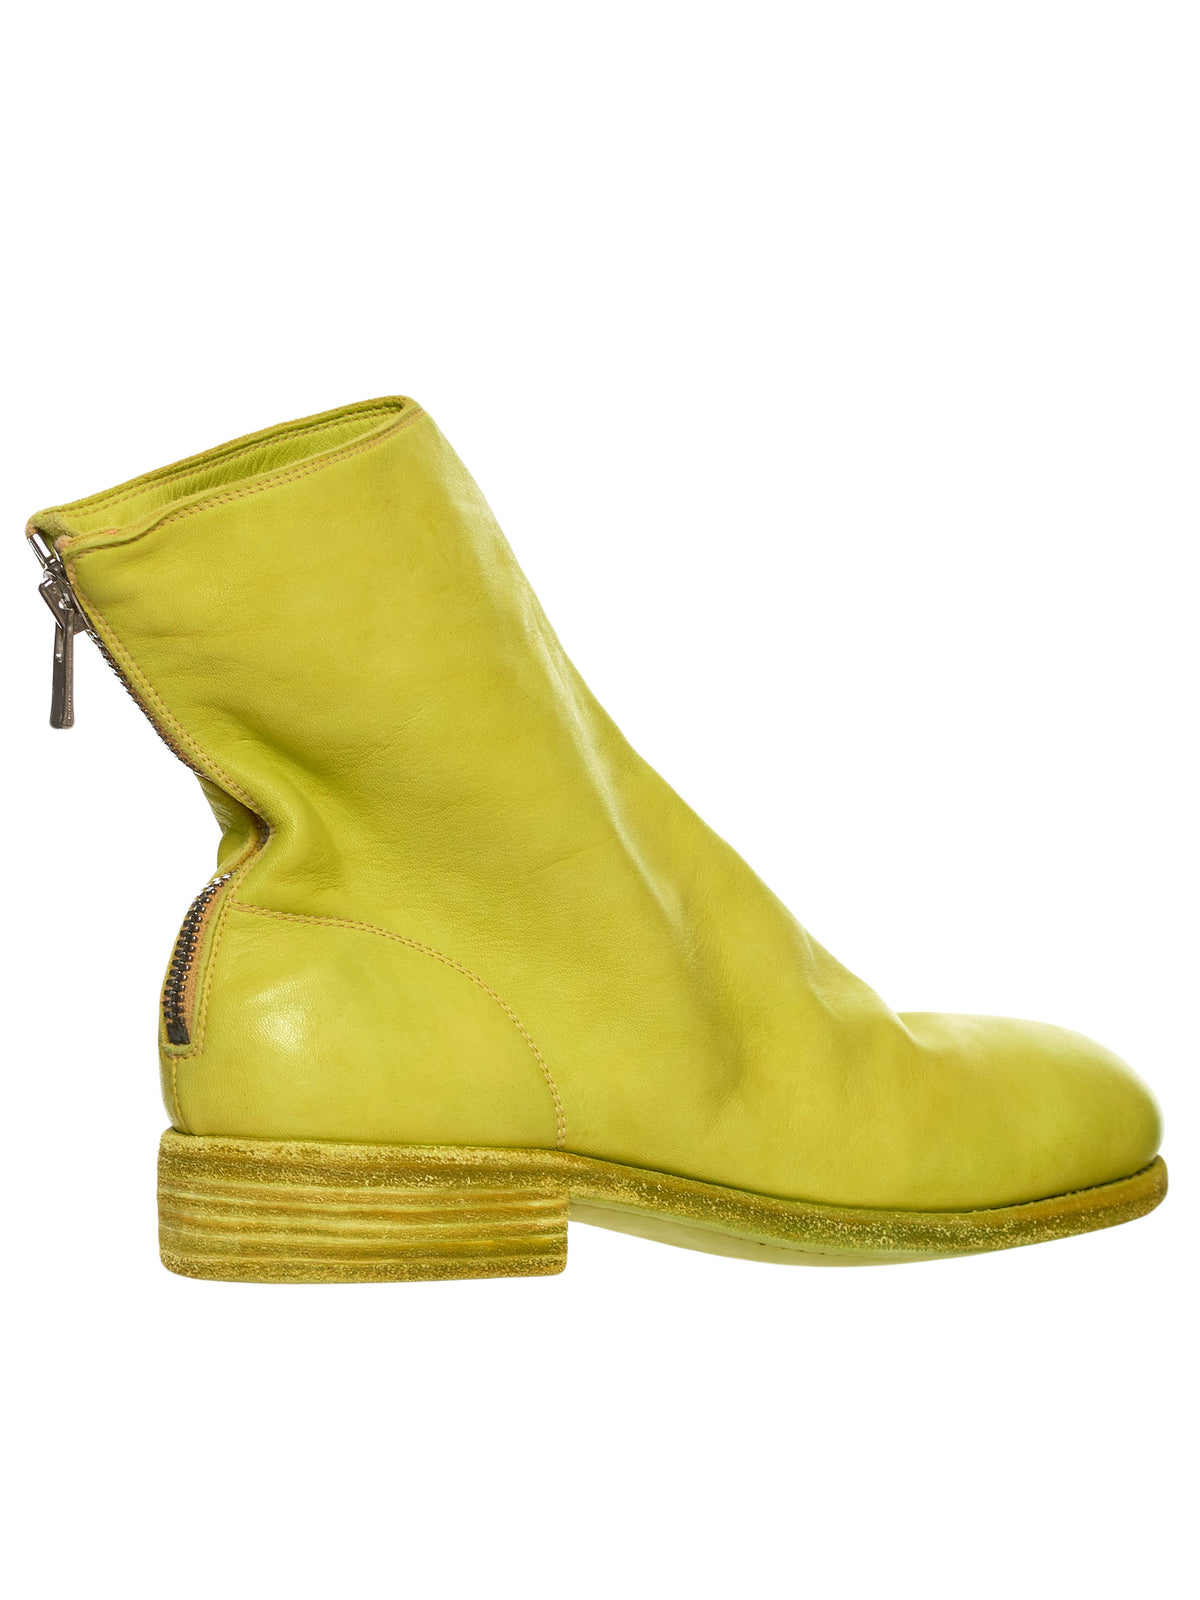 Guidi 986 Yellow Boot - Hlorenzo Detail 2